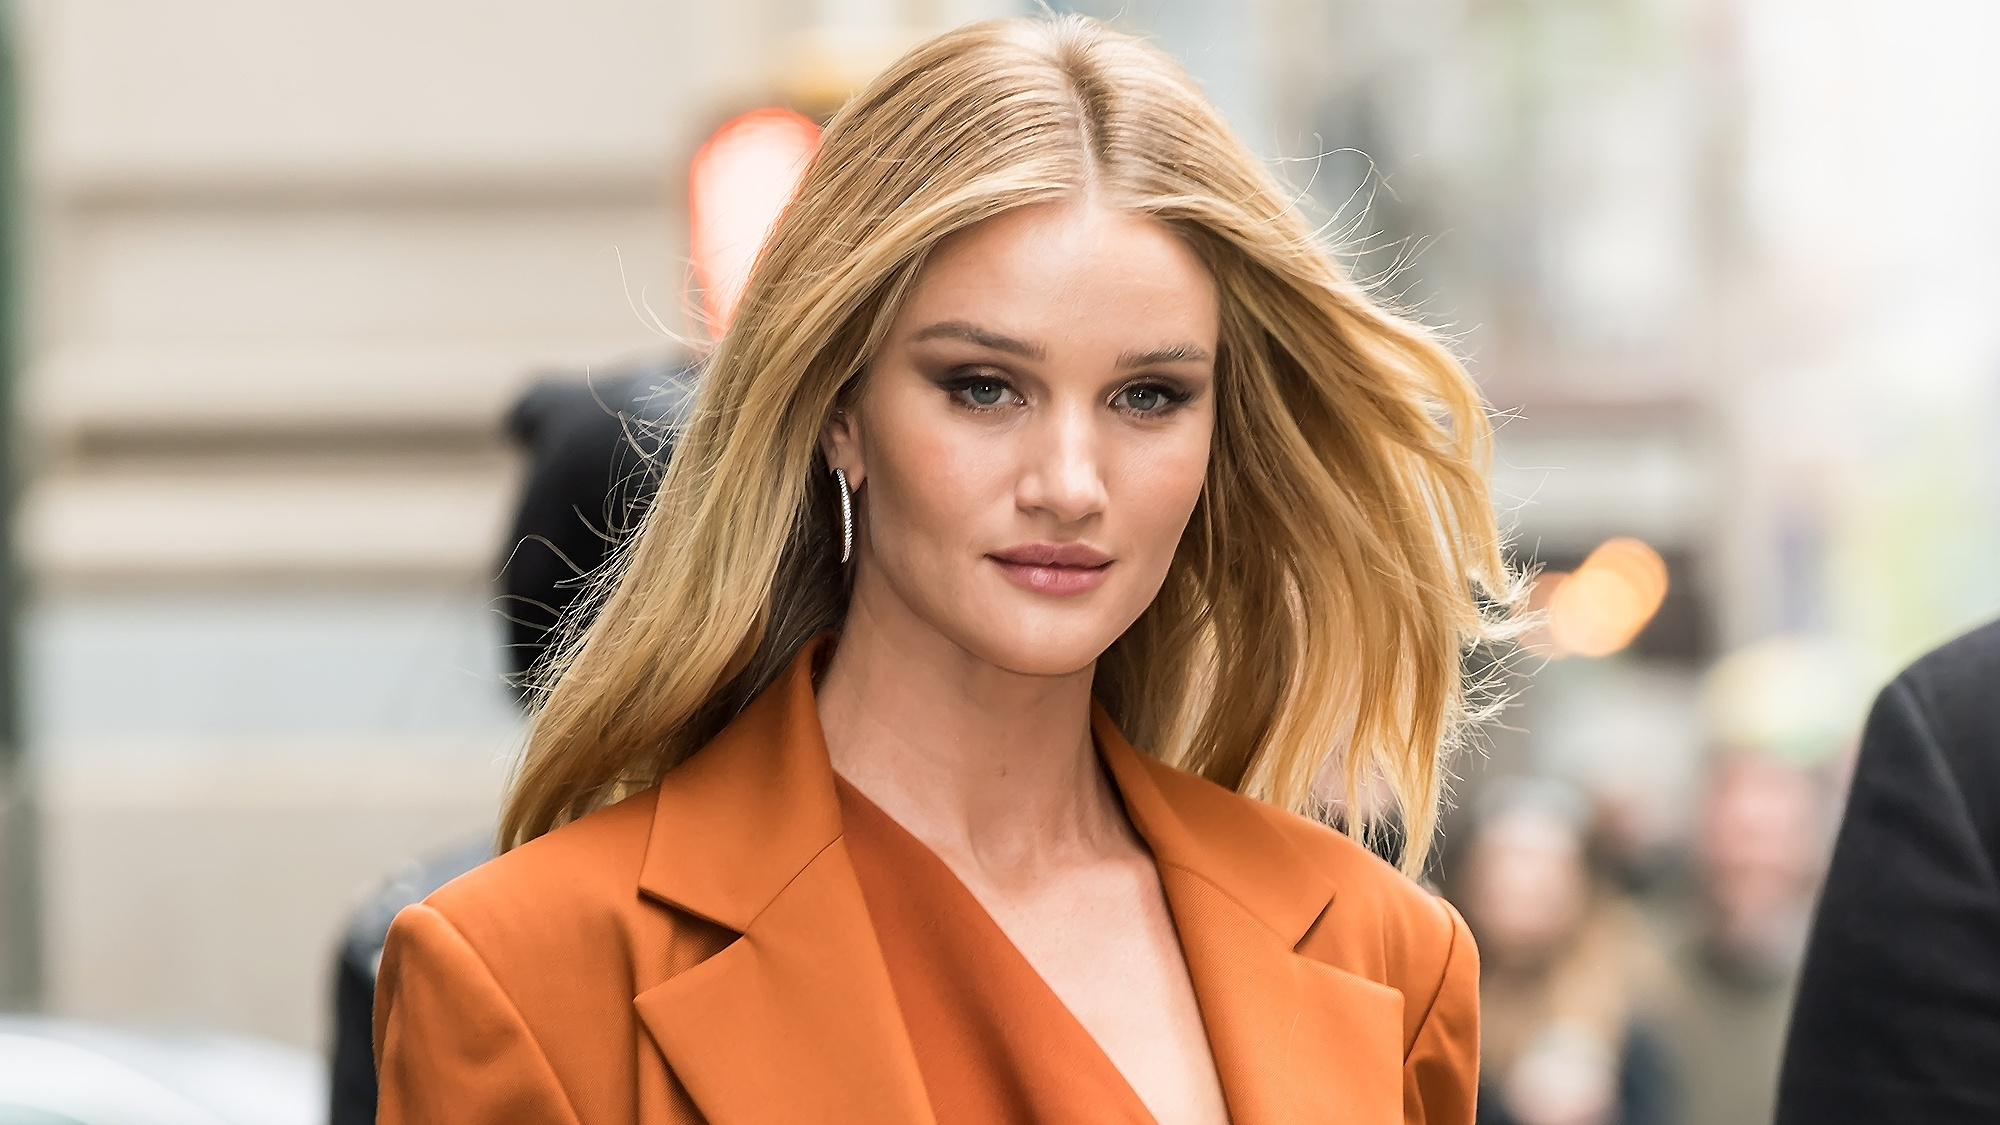 Rosie Huntington-Whiteley Gets Us Clued Up On Her Step-By-Step Off-Duty Skin Routine